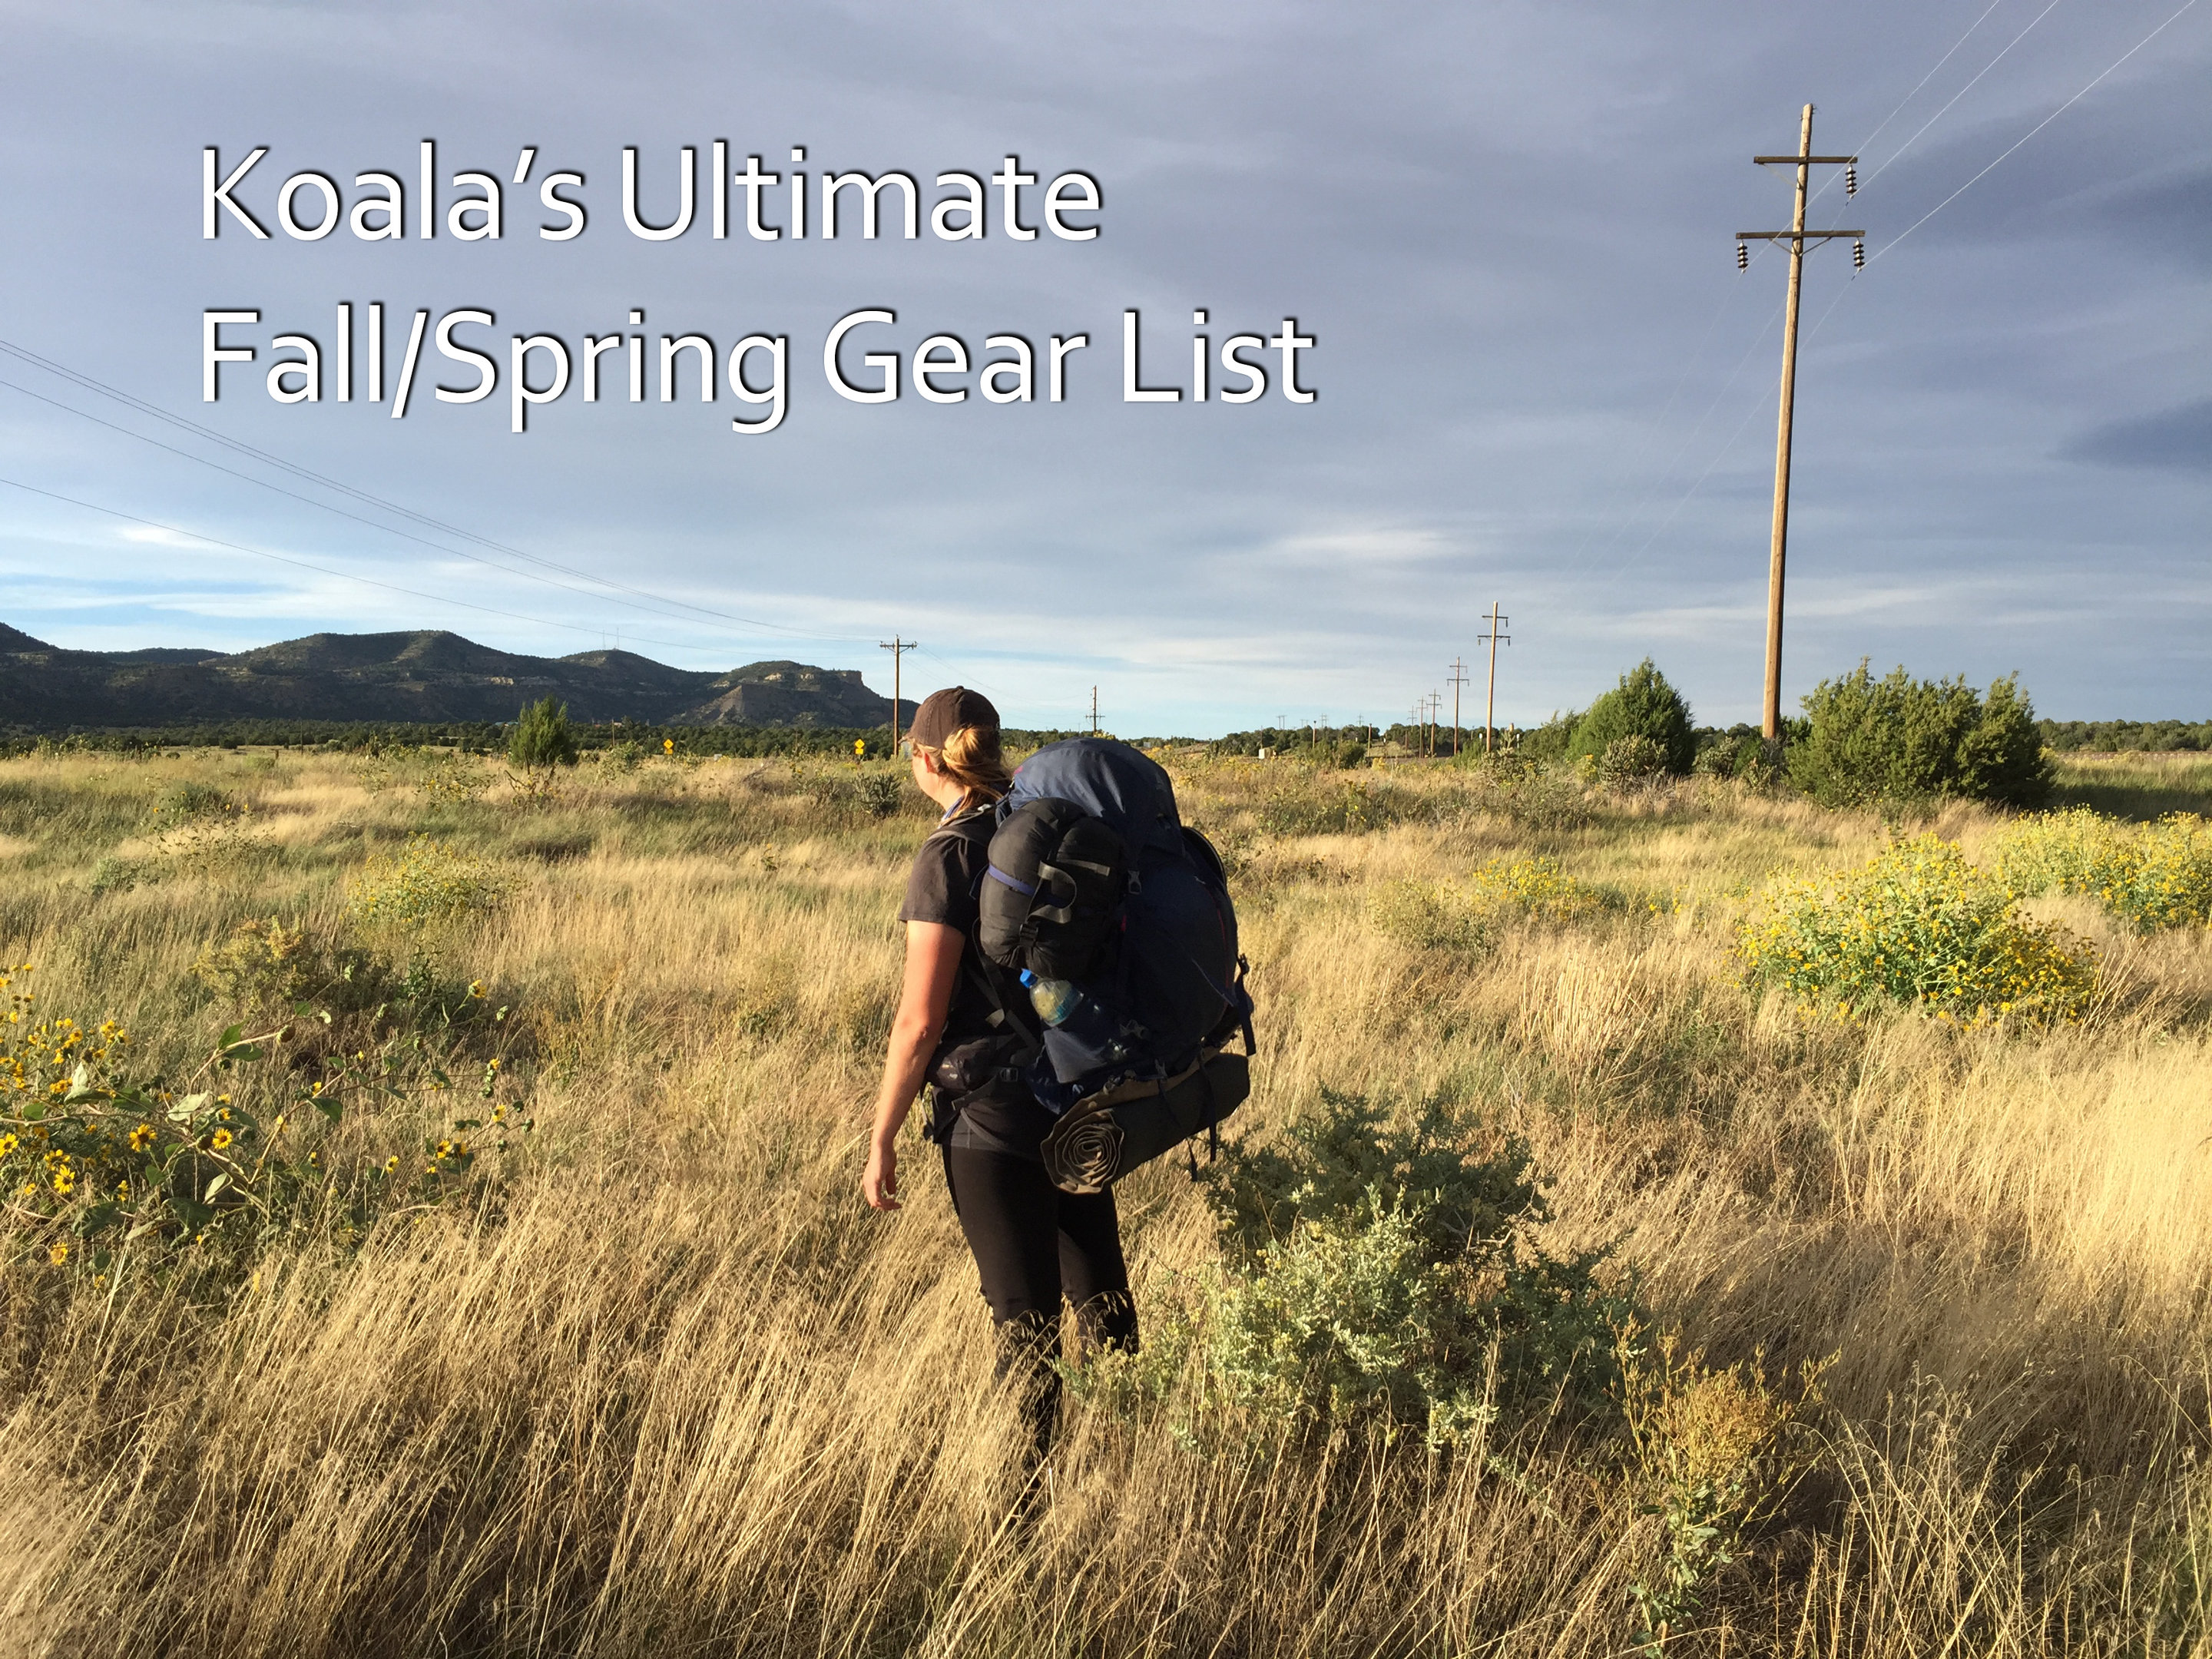 koalagear-jpg.44832_Koala's Ultimate Spring/Fall Gear List_General Gear Discussion_Squat the Planet_10:56 AM